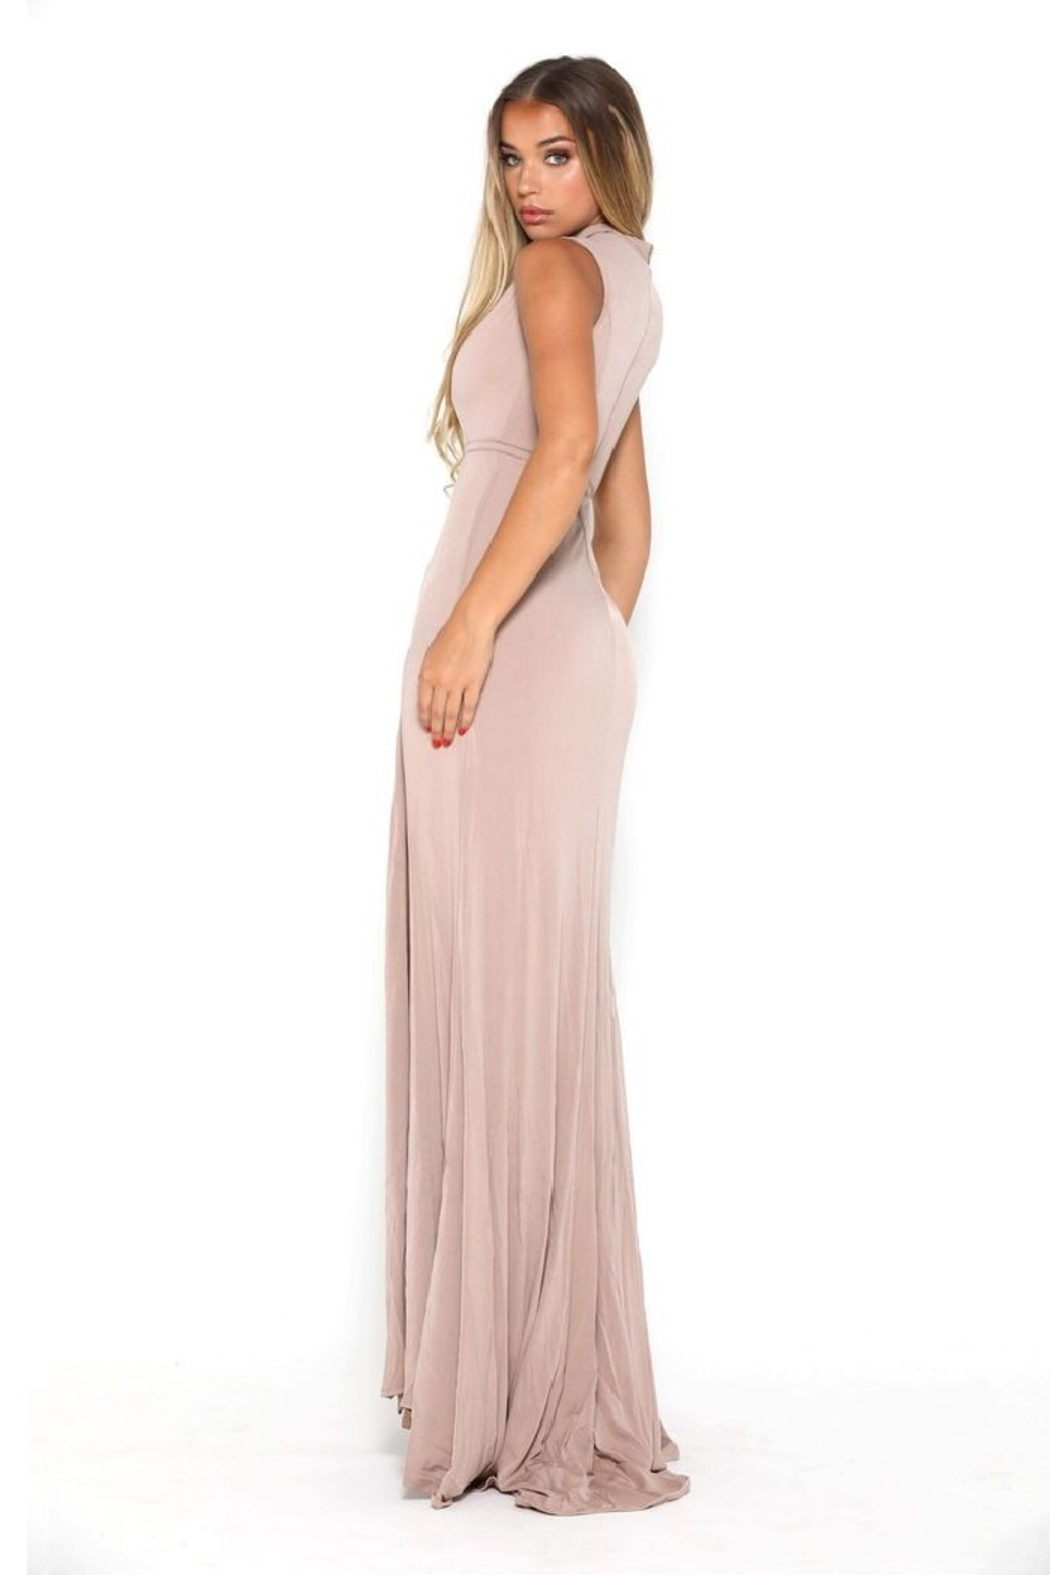 PORTIA AND SCARLETT Nude High Neck Long Semi-Formal Dress - Side Cropped Image